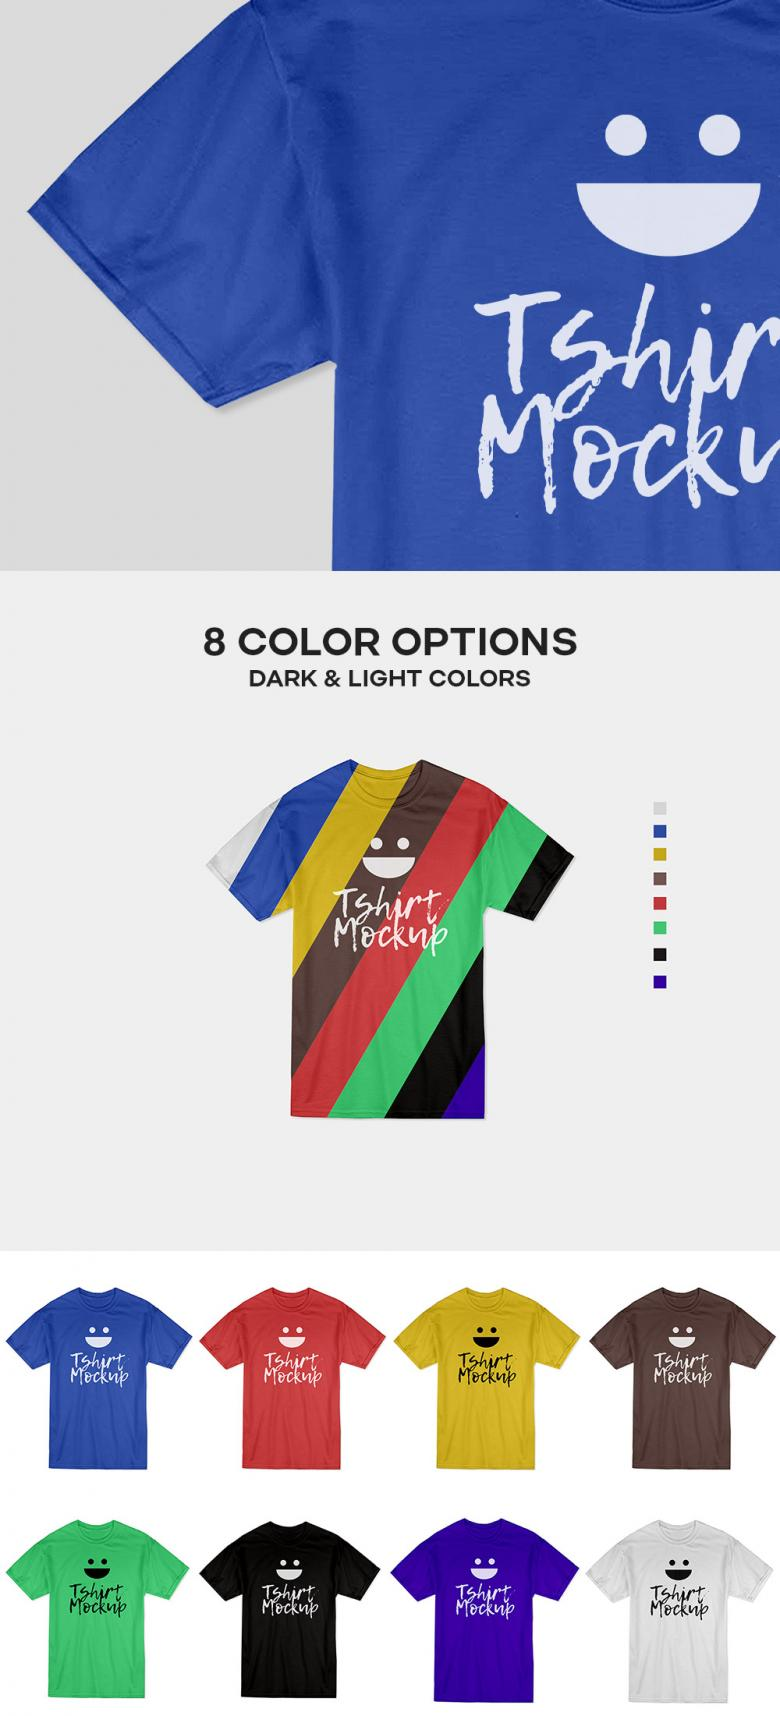 Cotton T-Shirt Mockup PSD